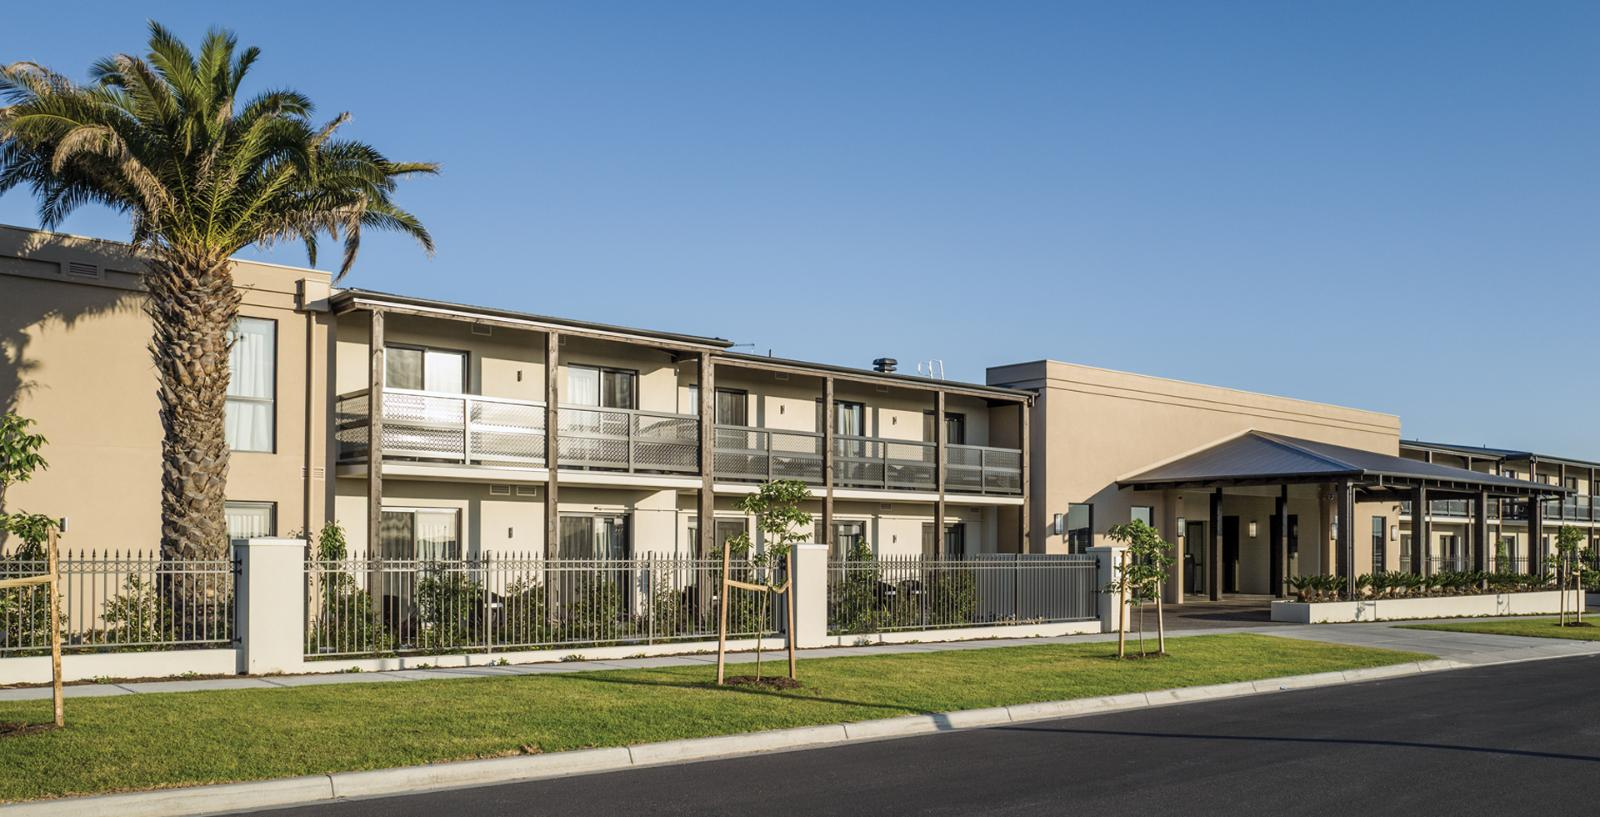 Arcare aged care keysborough exterior 03